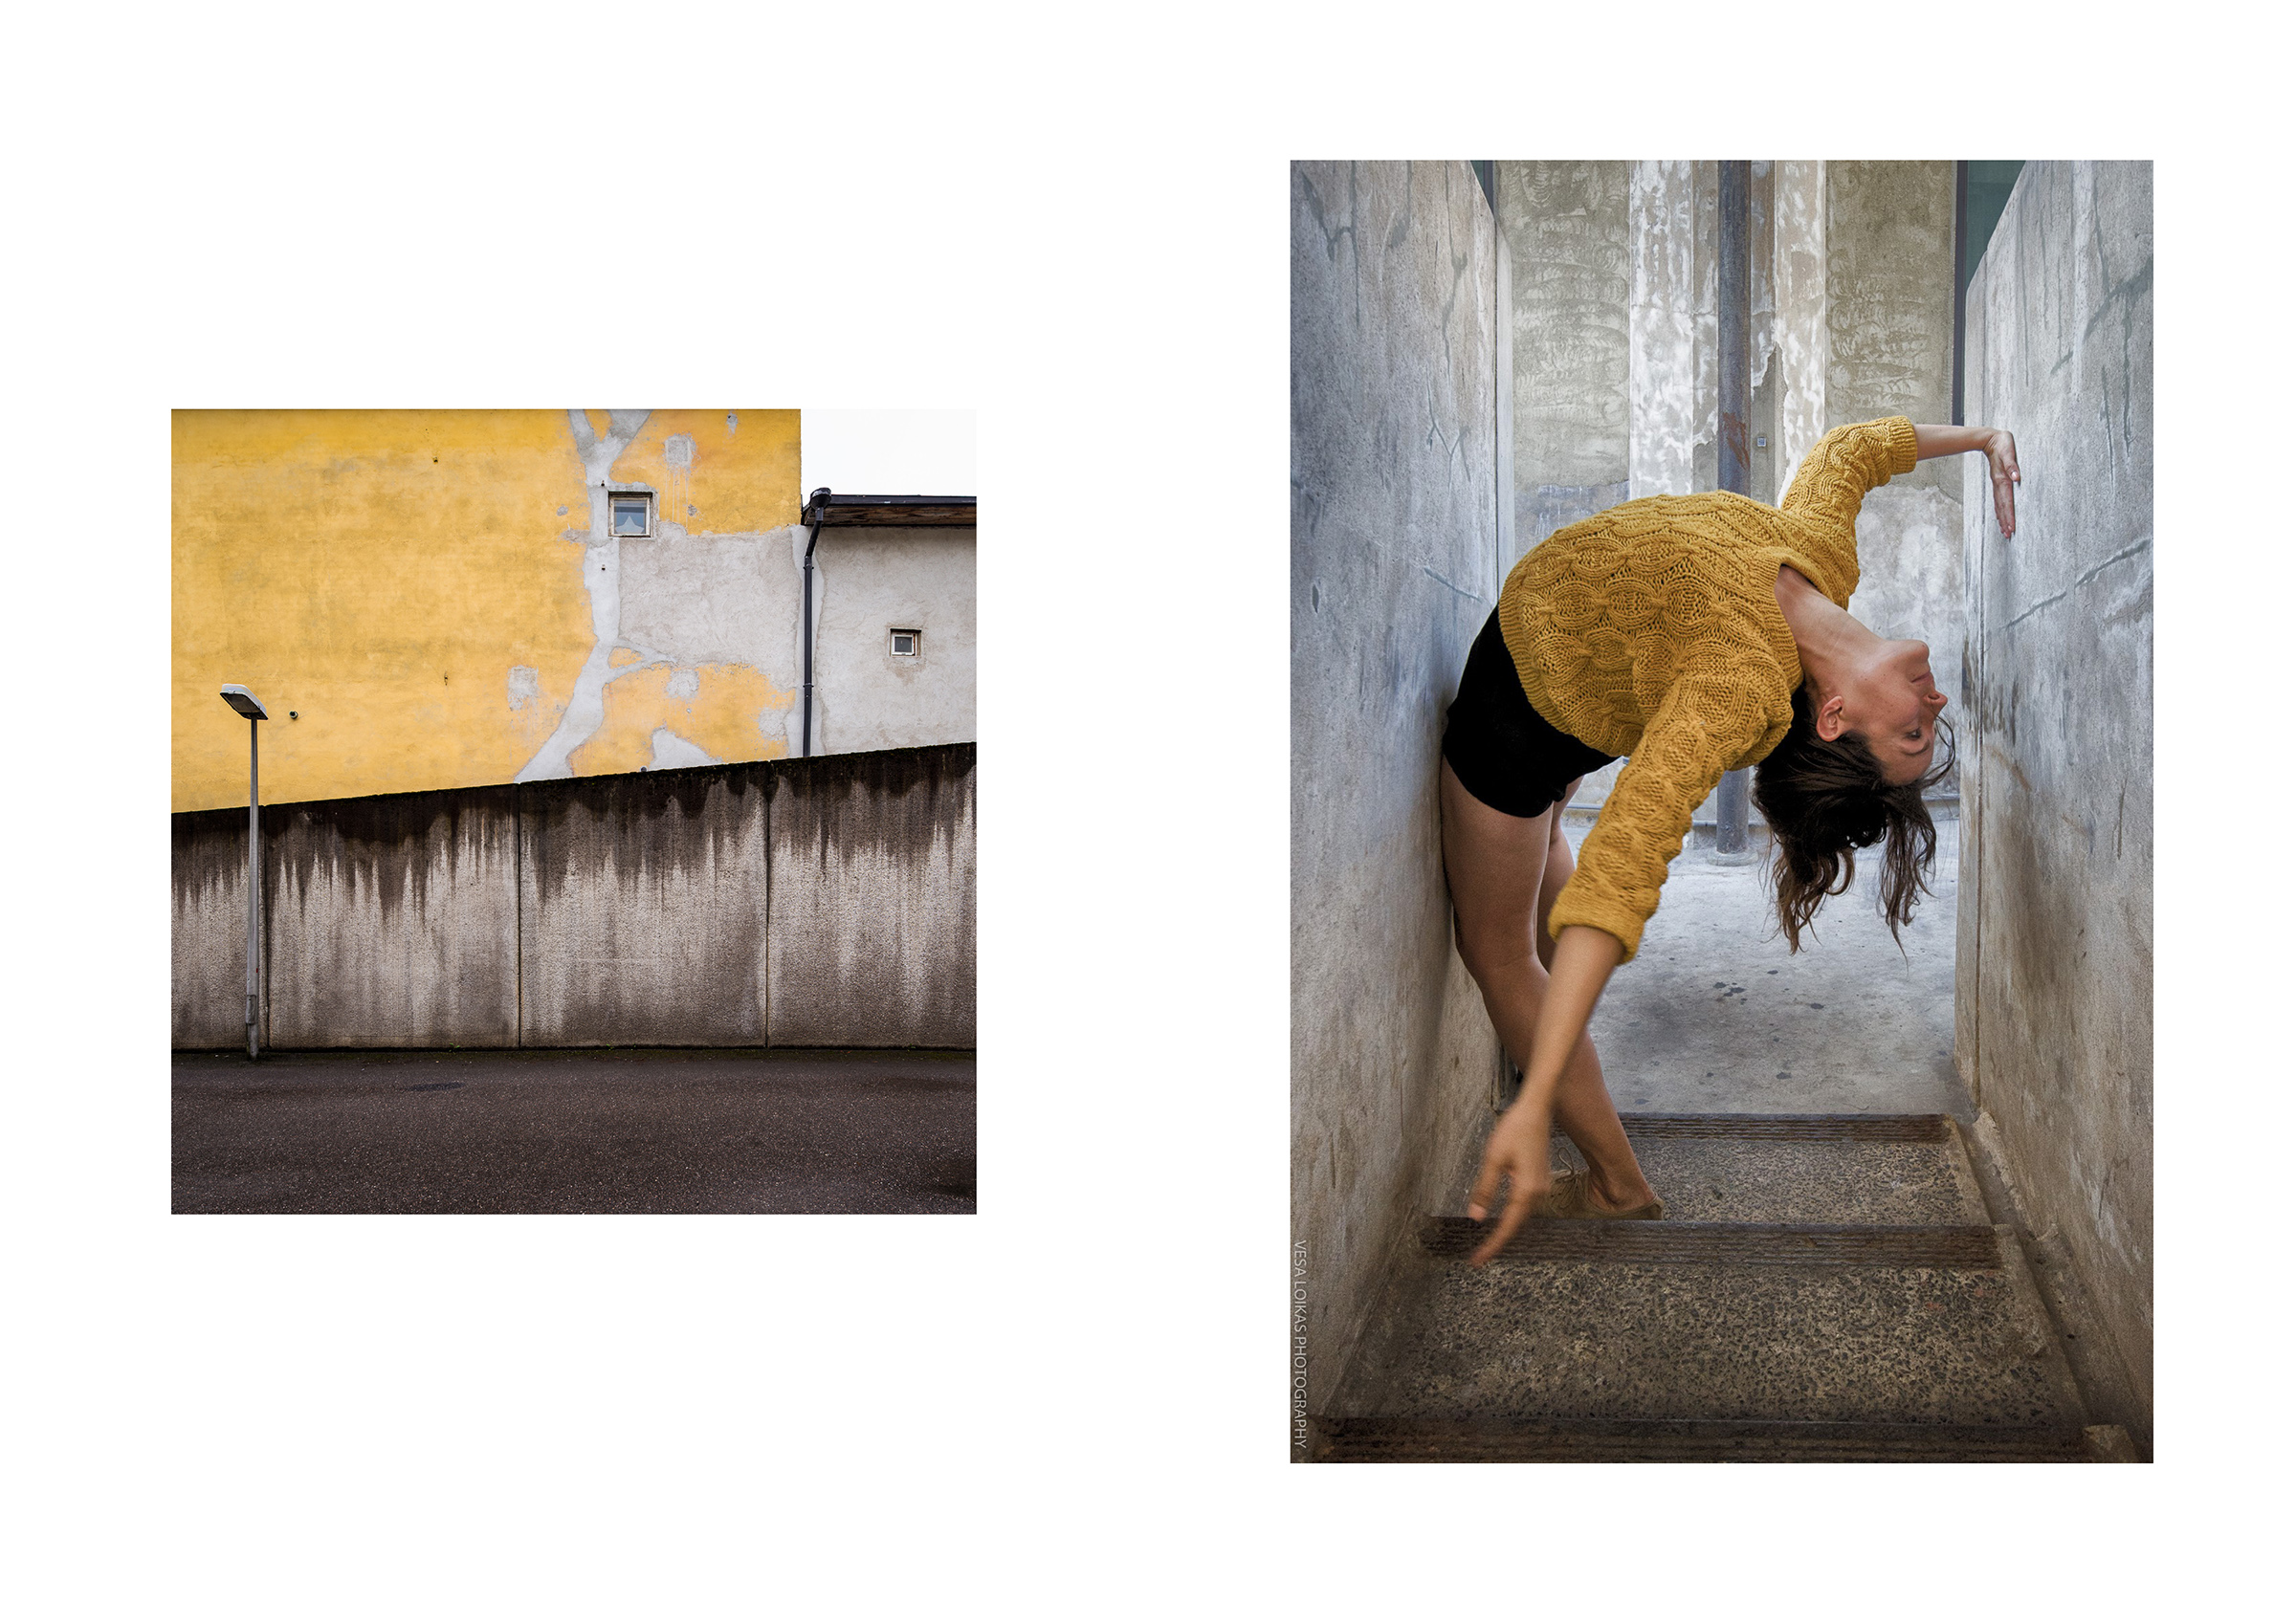 Photo 🅰:   YELLOWS & BROWNS |   Turku, Finland 2016 Photo 🅱:   CONCRETE DREAMS - ACT III   1933 Shanghai building(上海1933老场坊), Hongkou District, Shanghai, People's Republic of China | October 2014 | dancer: Anneliese Charek